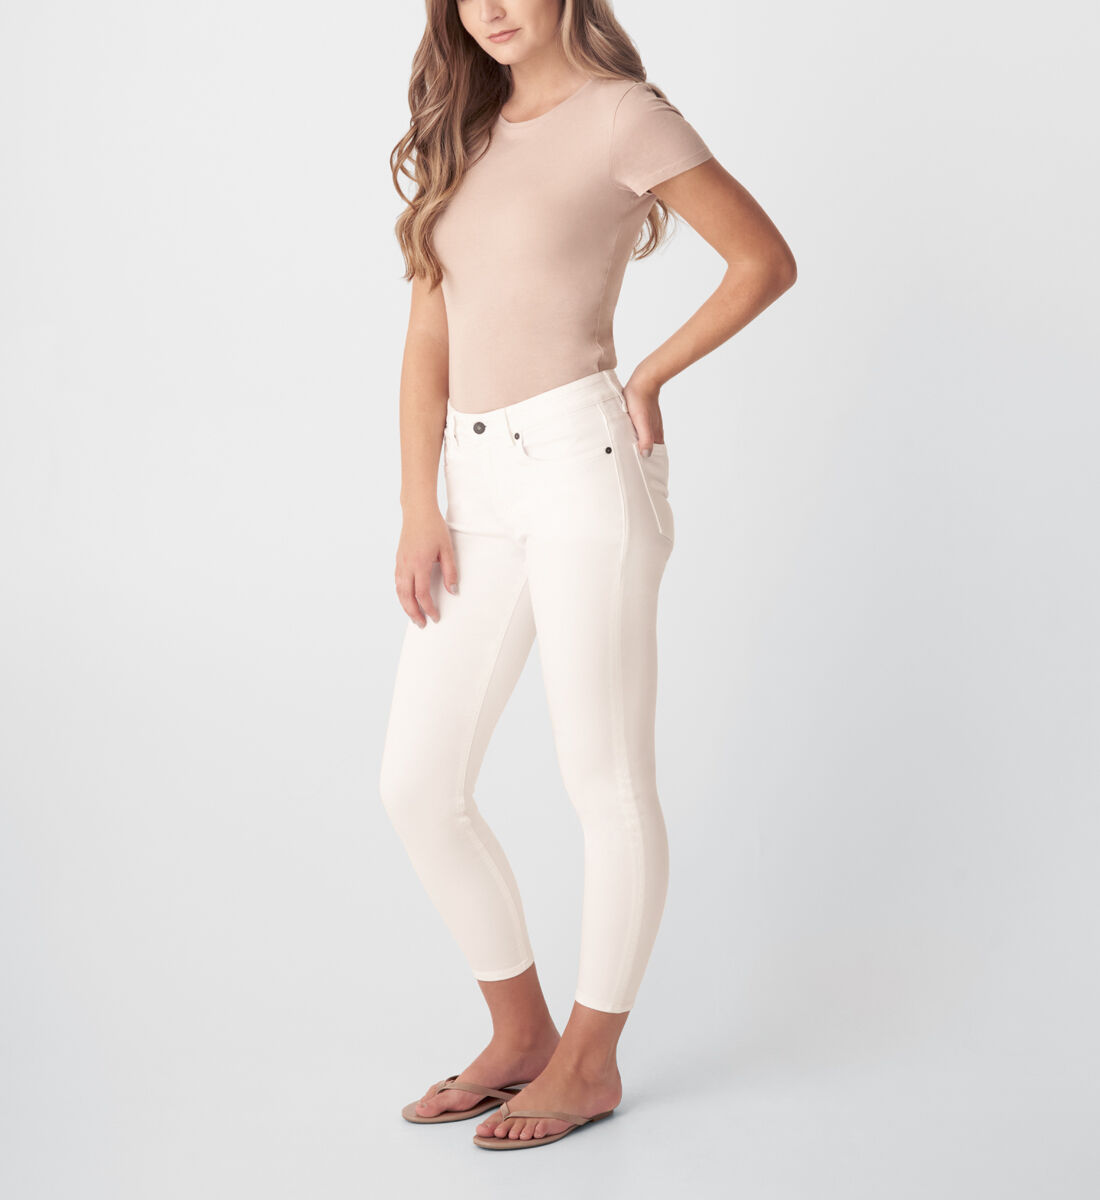 Most Wanted Mid Rise Skinny Jeans,White Side